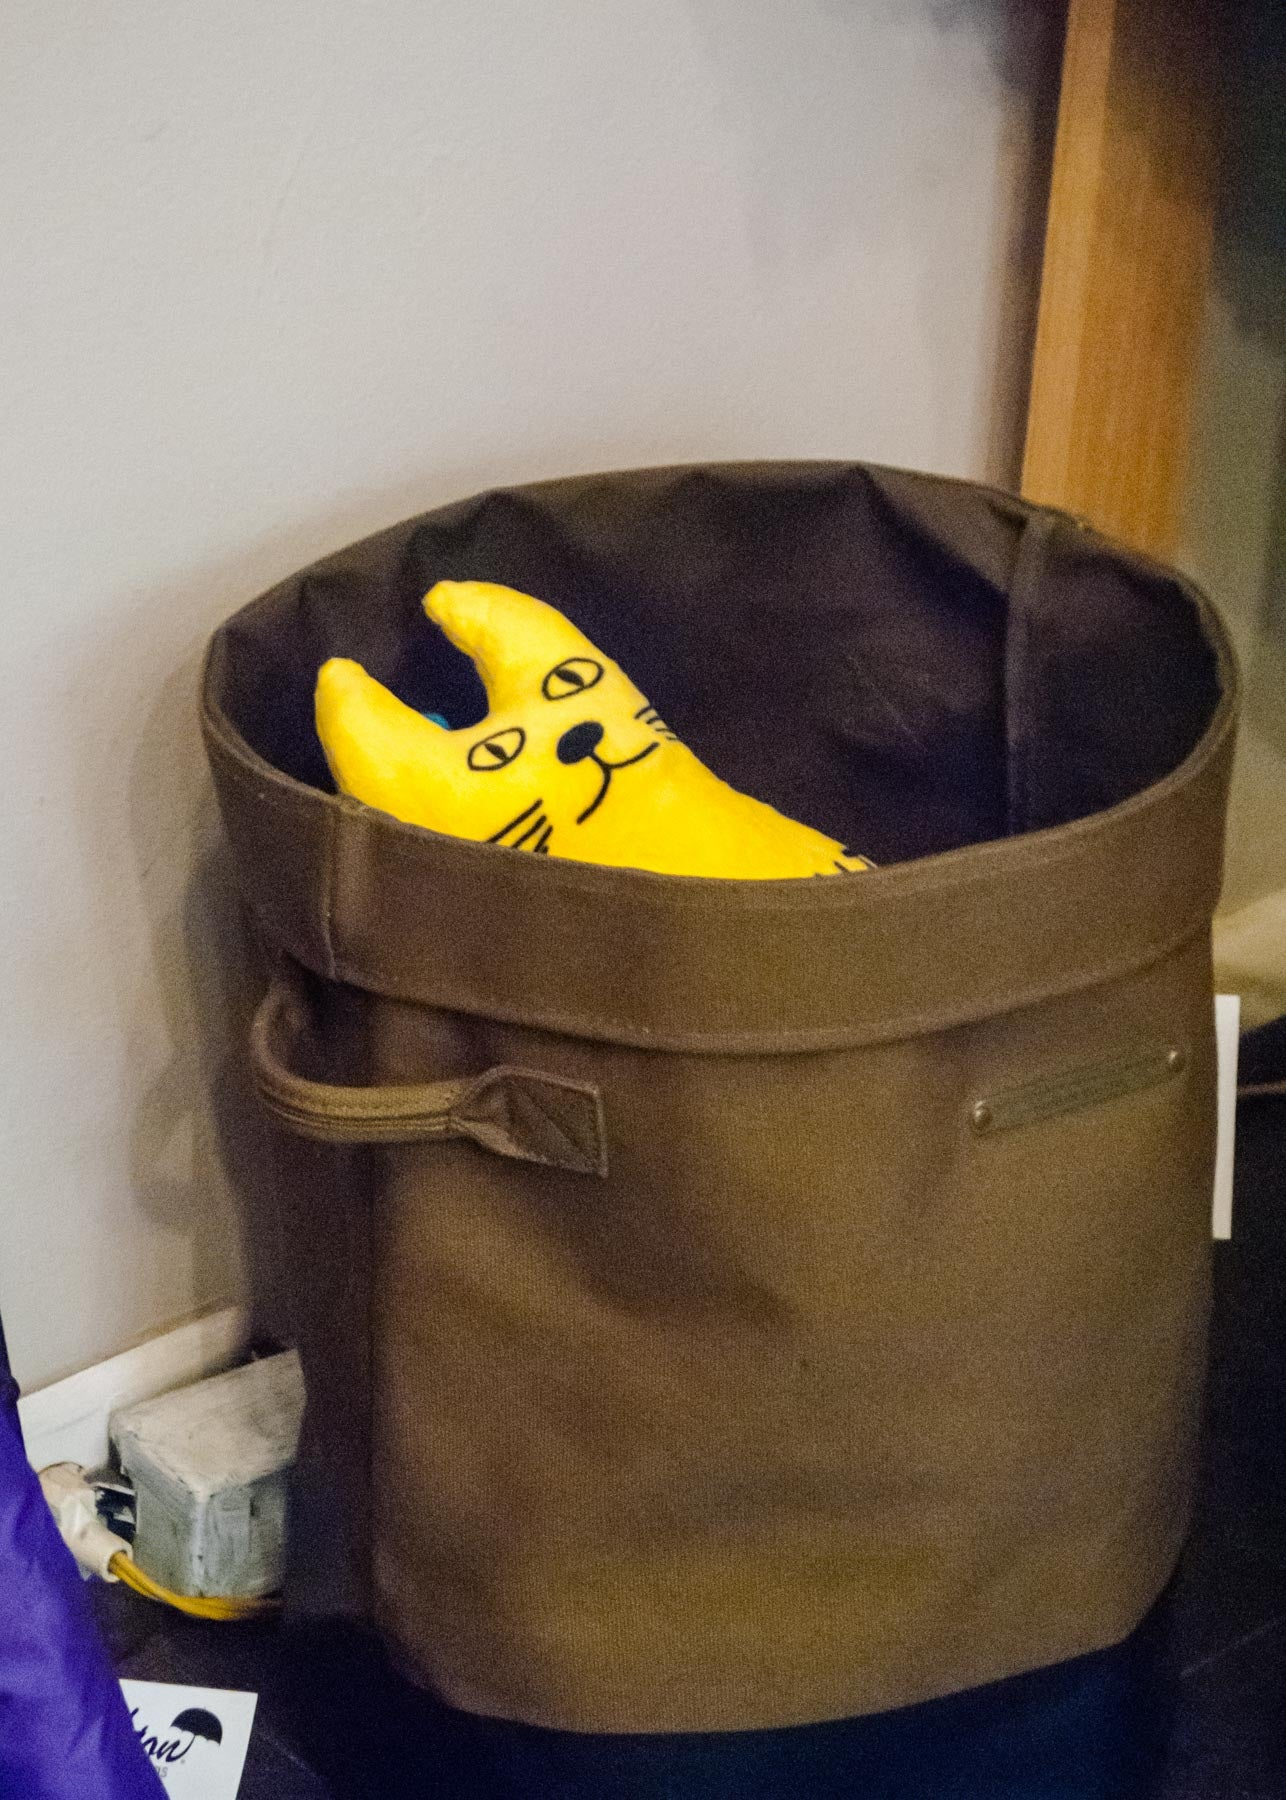 A sketchy looking yellow plushie cat stares out from a canvas storage bin.